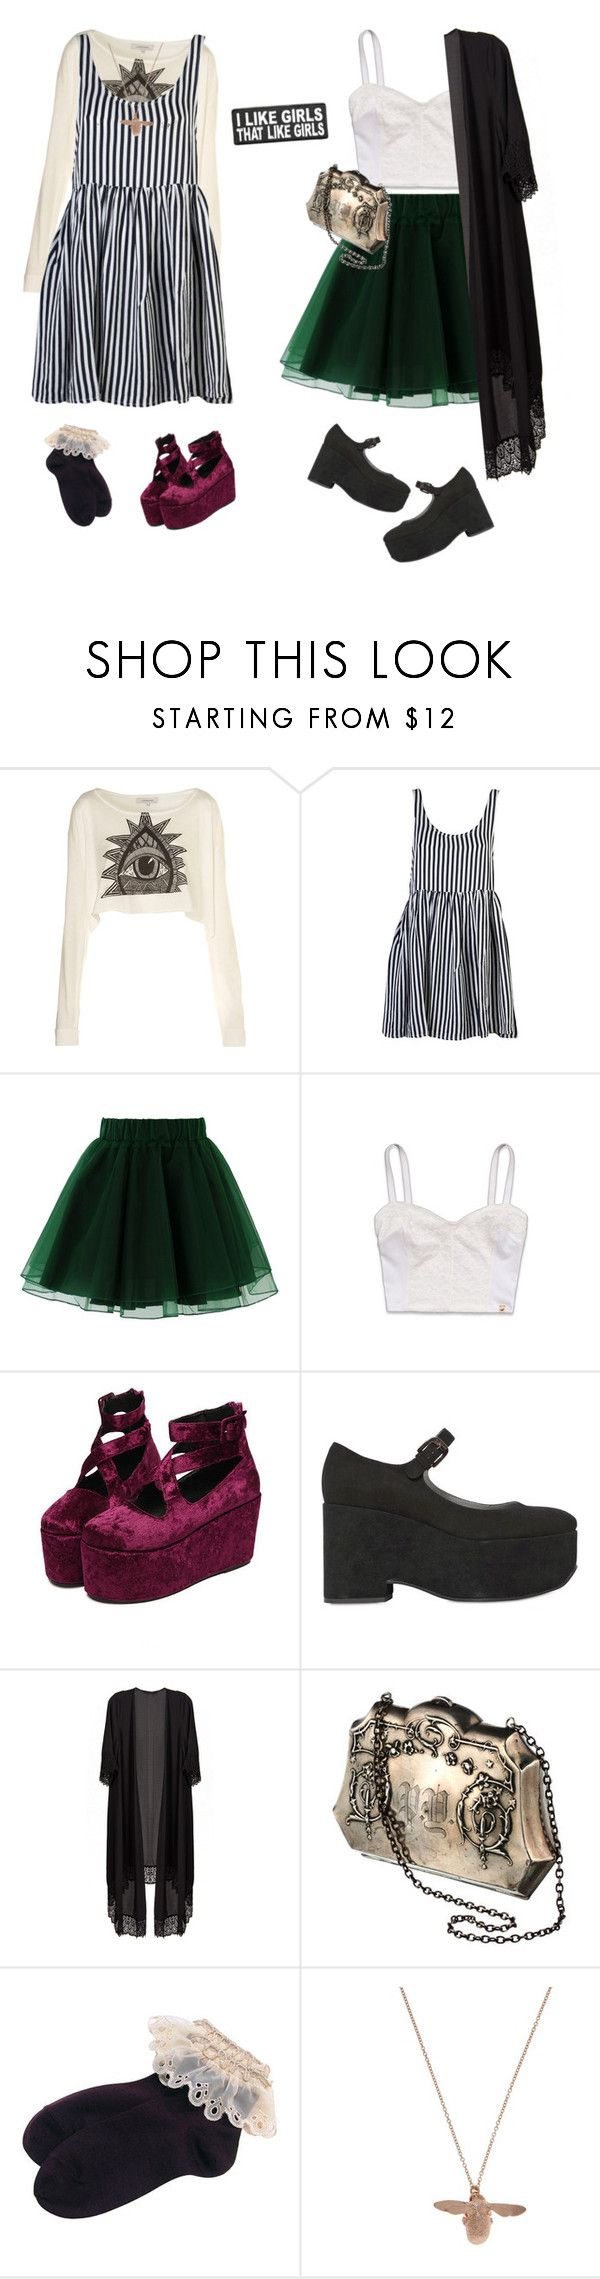 """""""Oh Darling, She's a Keeper"""" by vogelprinz ❤ liked on Polyvore featuring Illustrated People, Friend of Mine, Chicwish, Hollister Co., Jil Sander Navy, Alexis Bittar and Alex Monroe"""